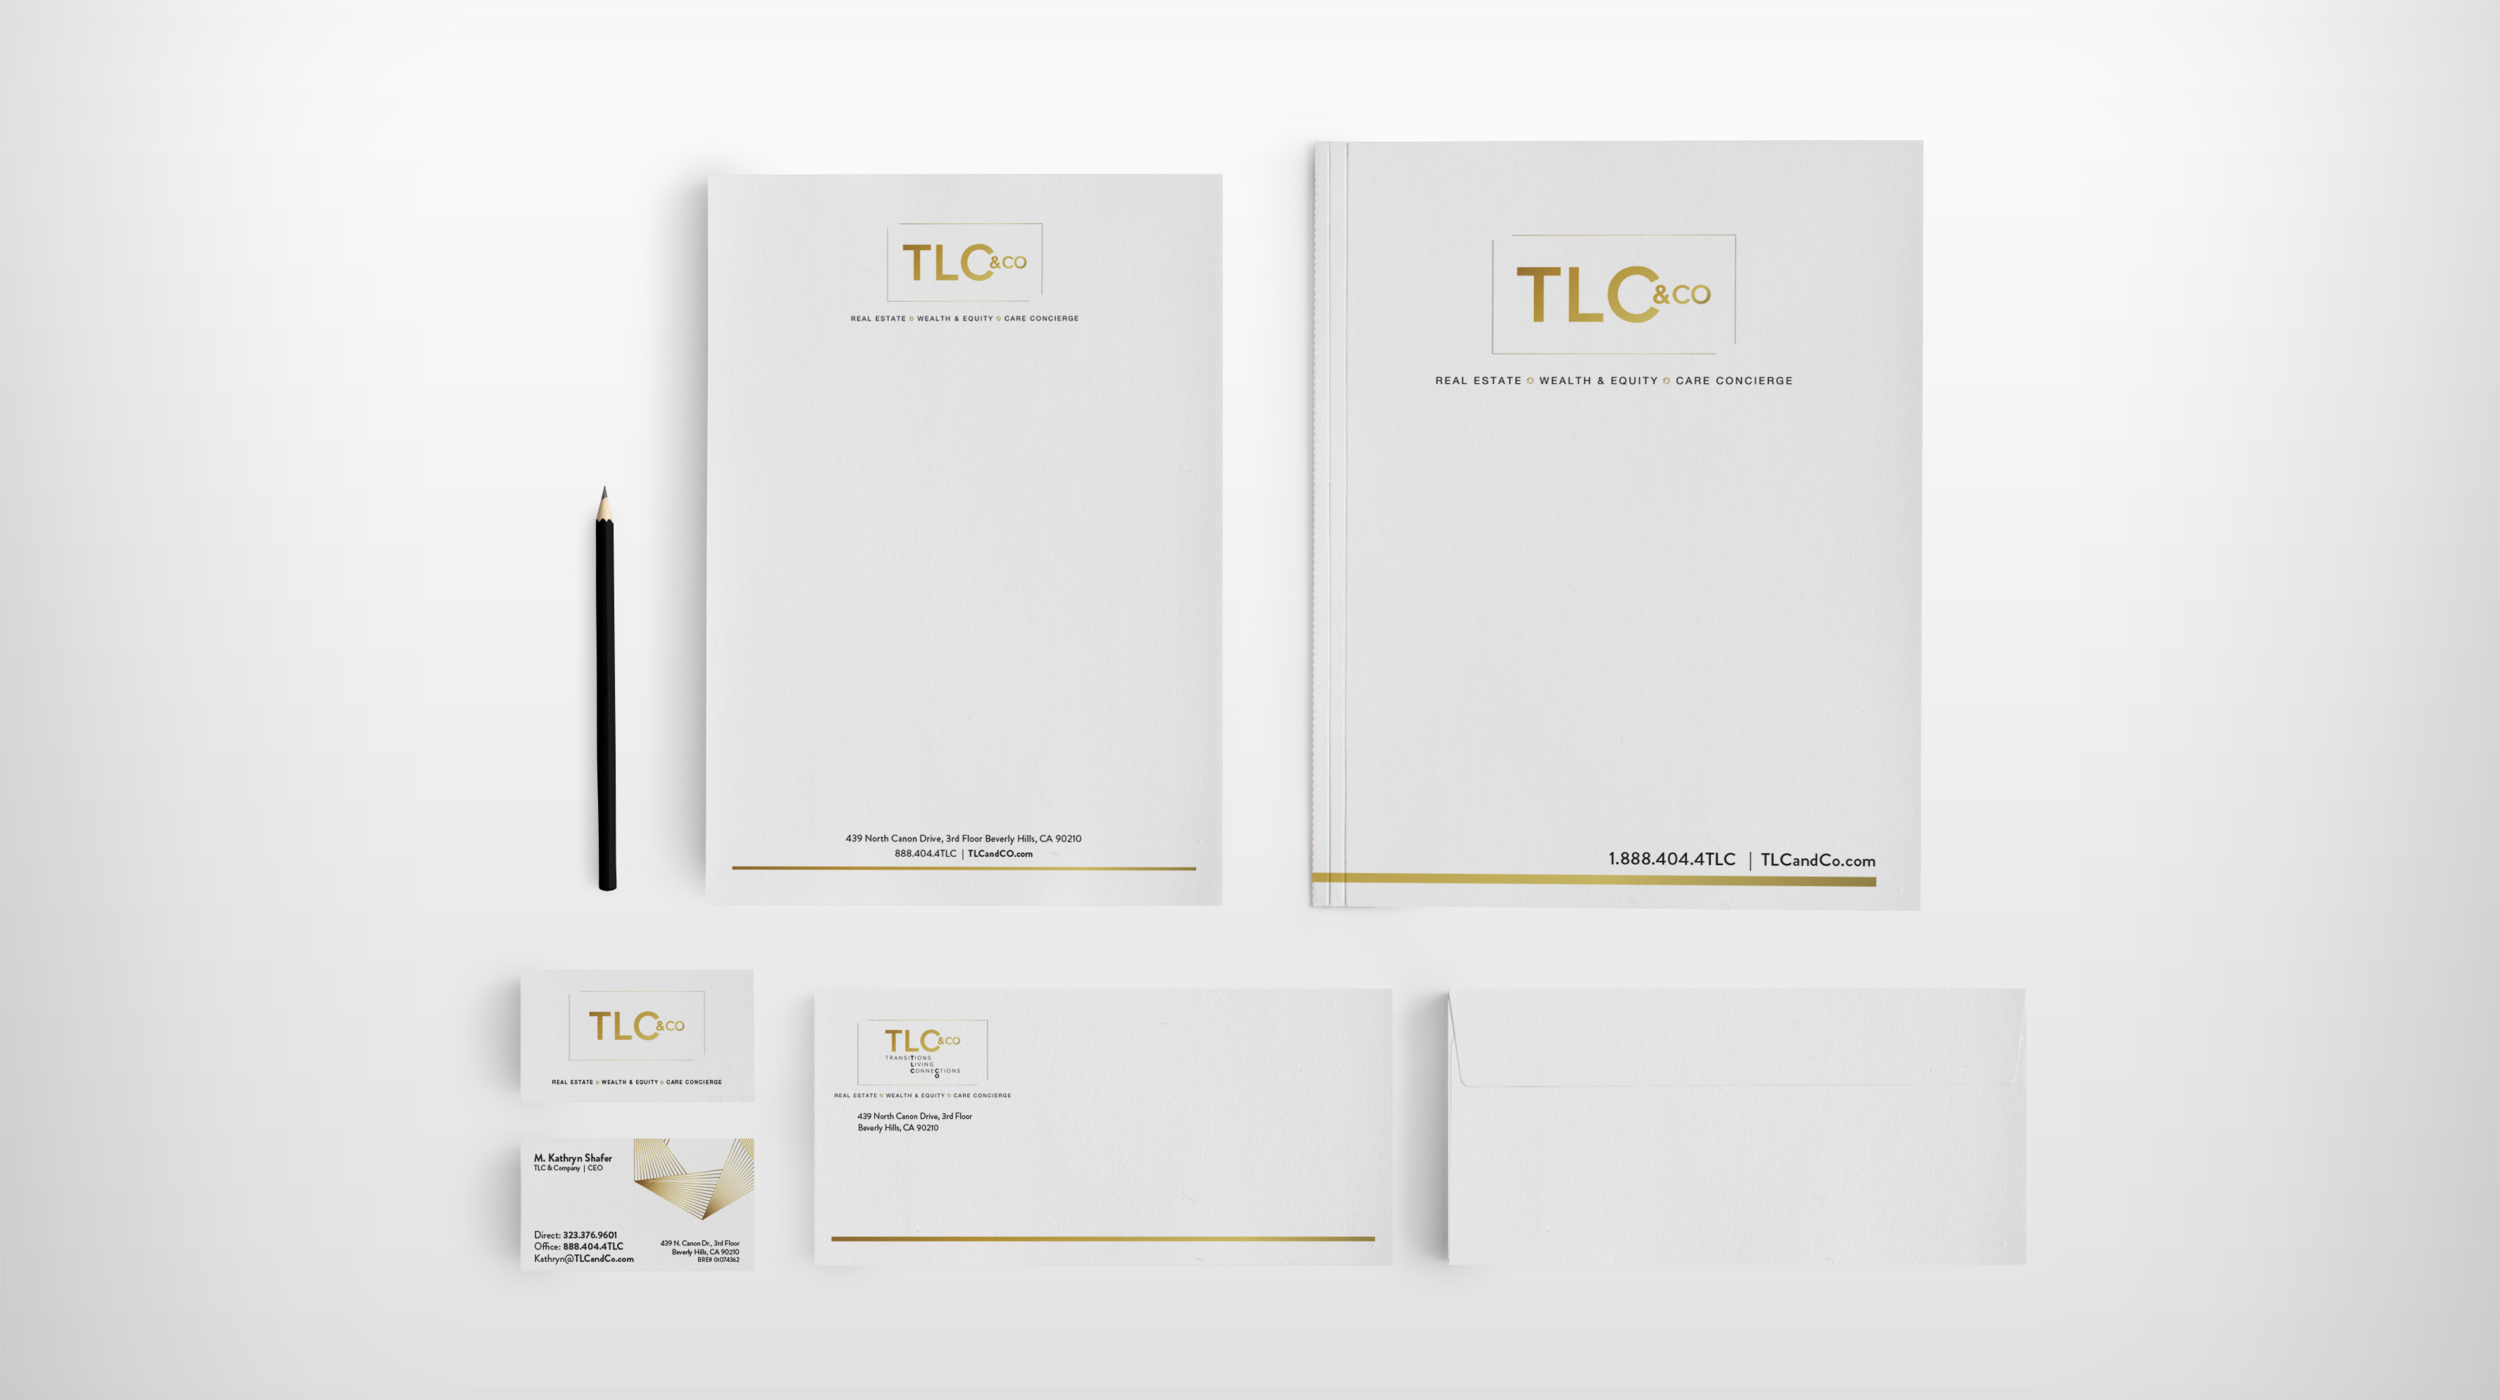 tlc collateral.png